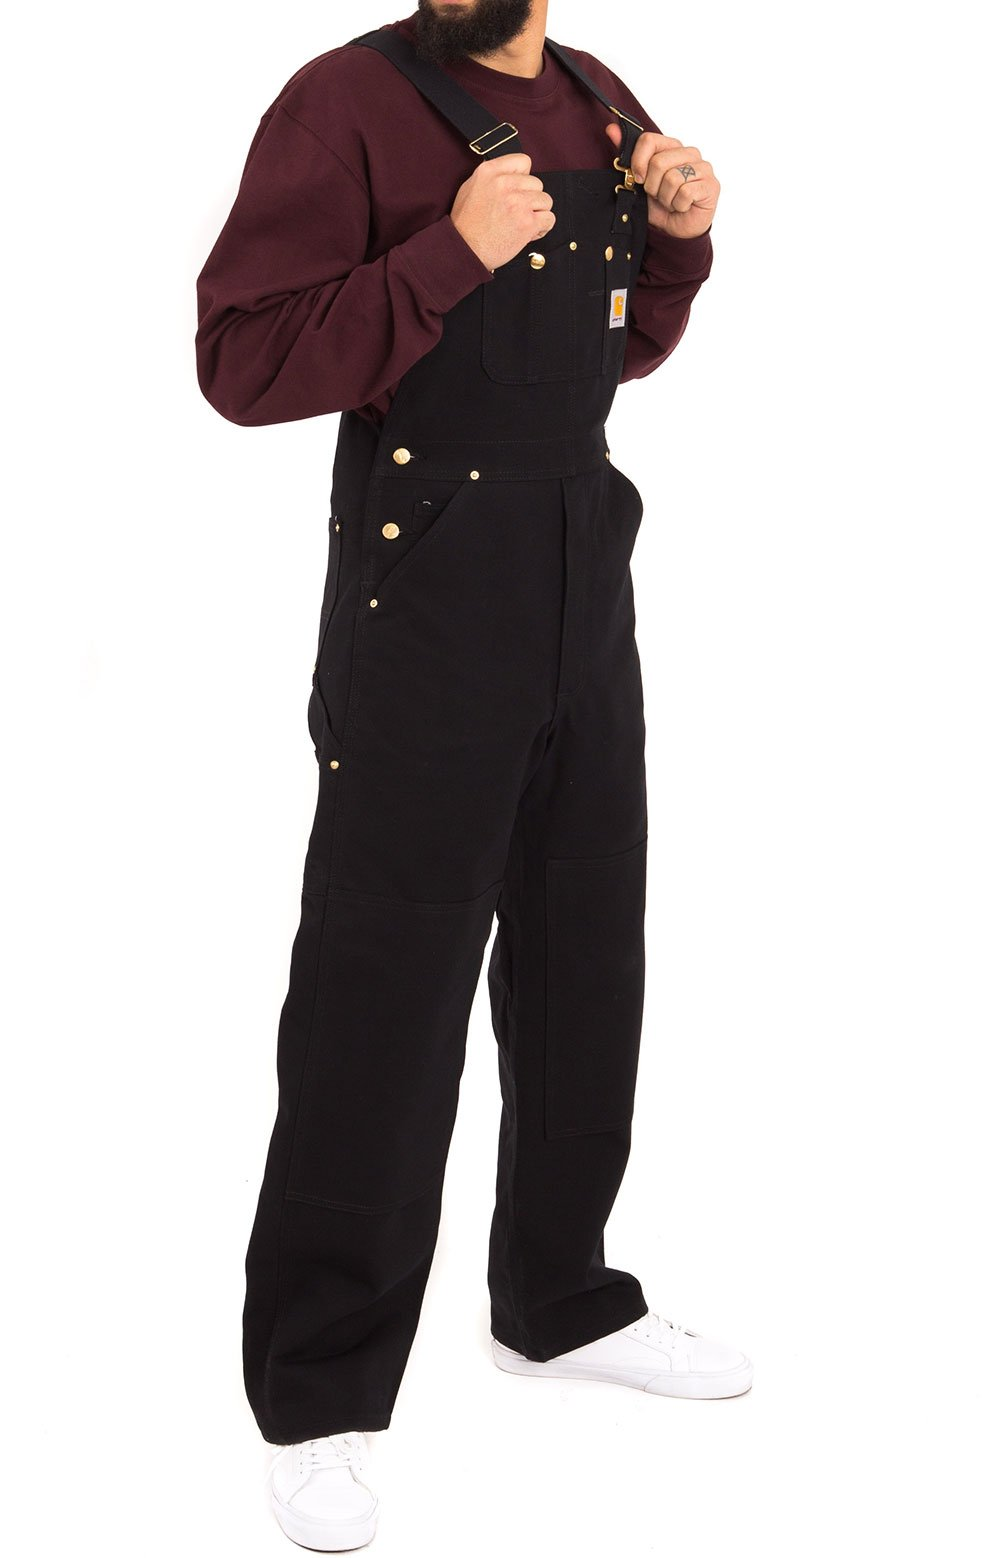 (102776) Relaxed Fit Duck Bib Overalls - Black 4